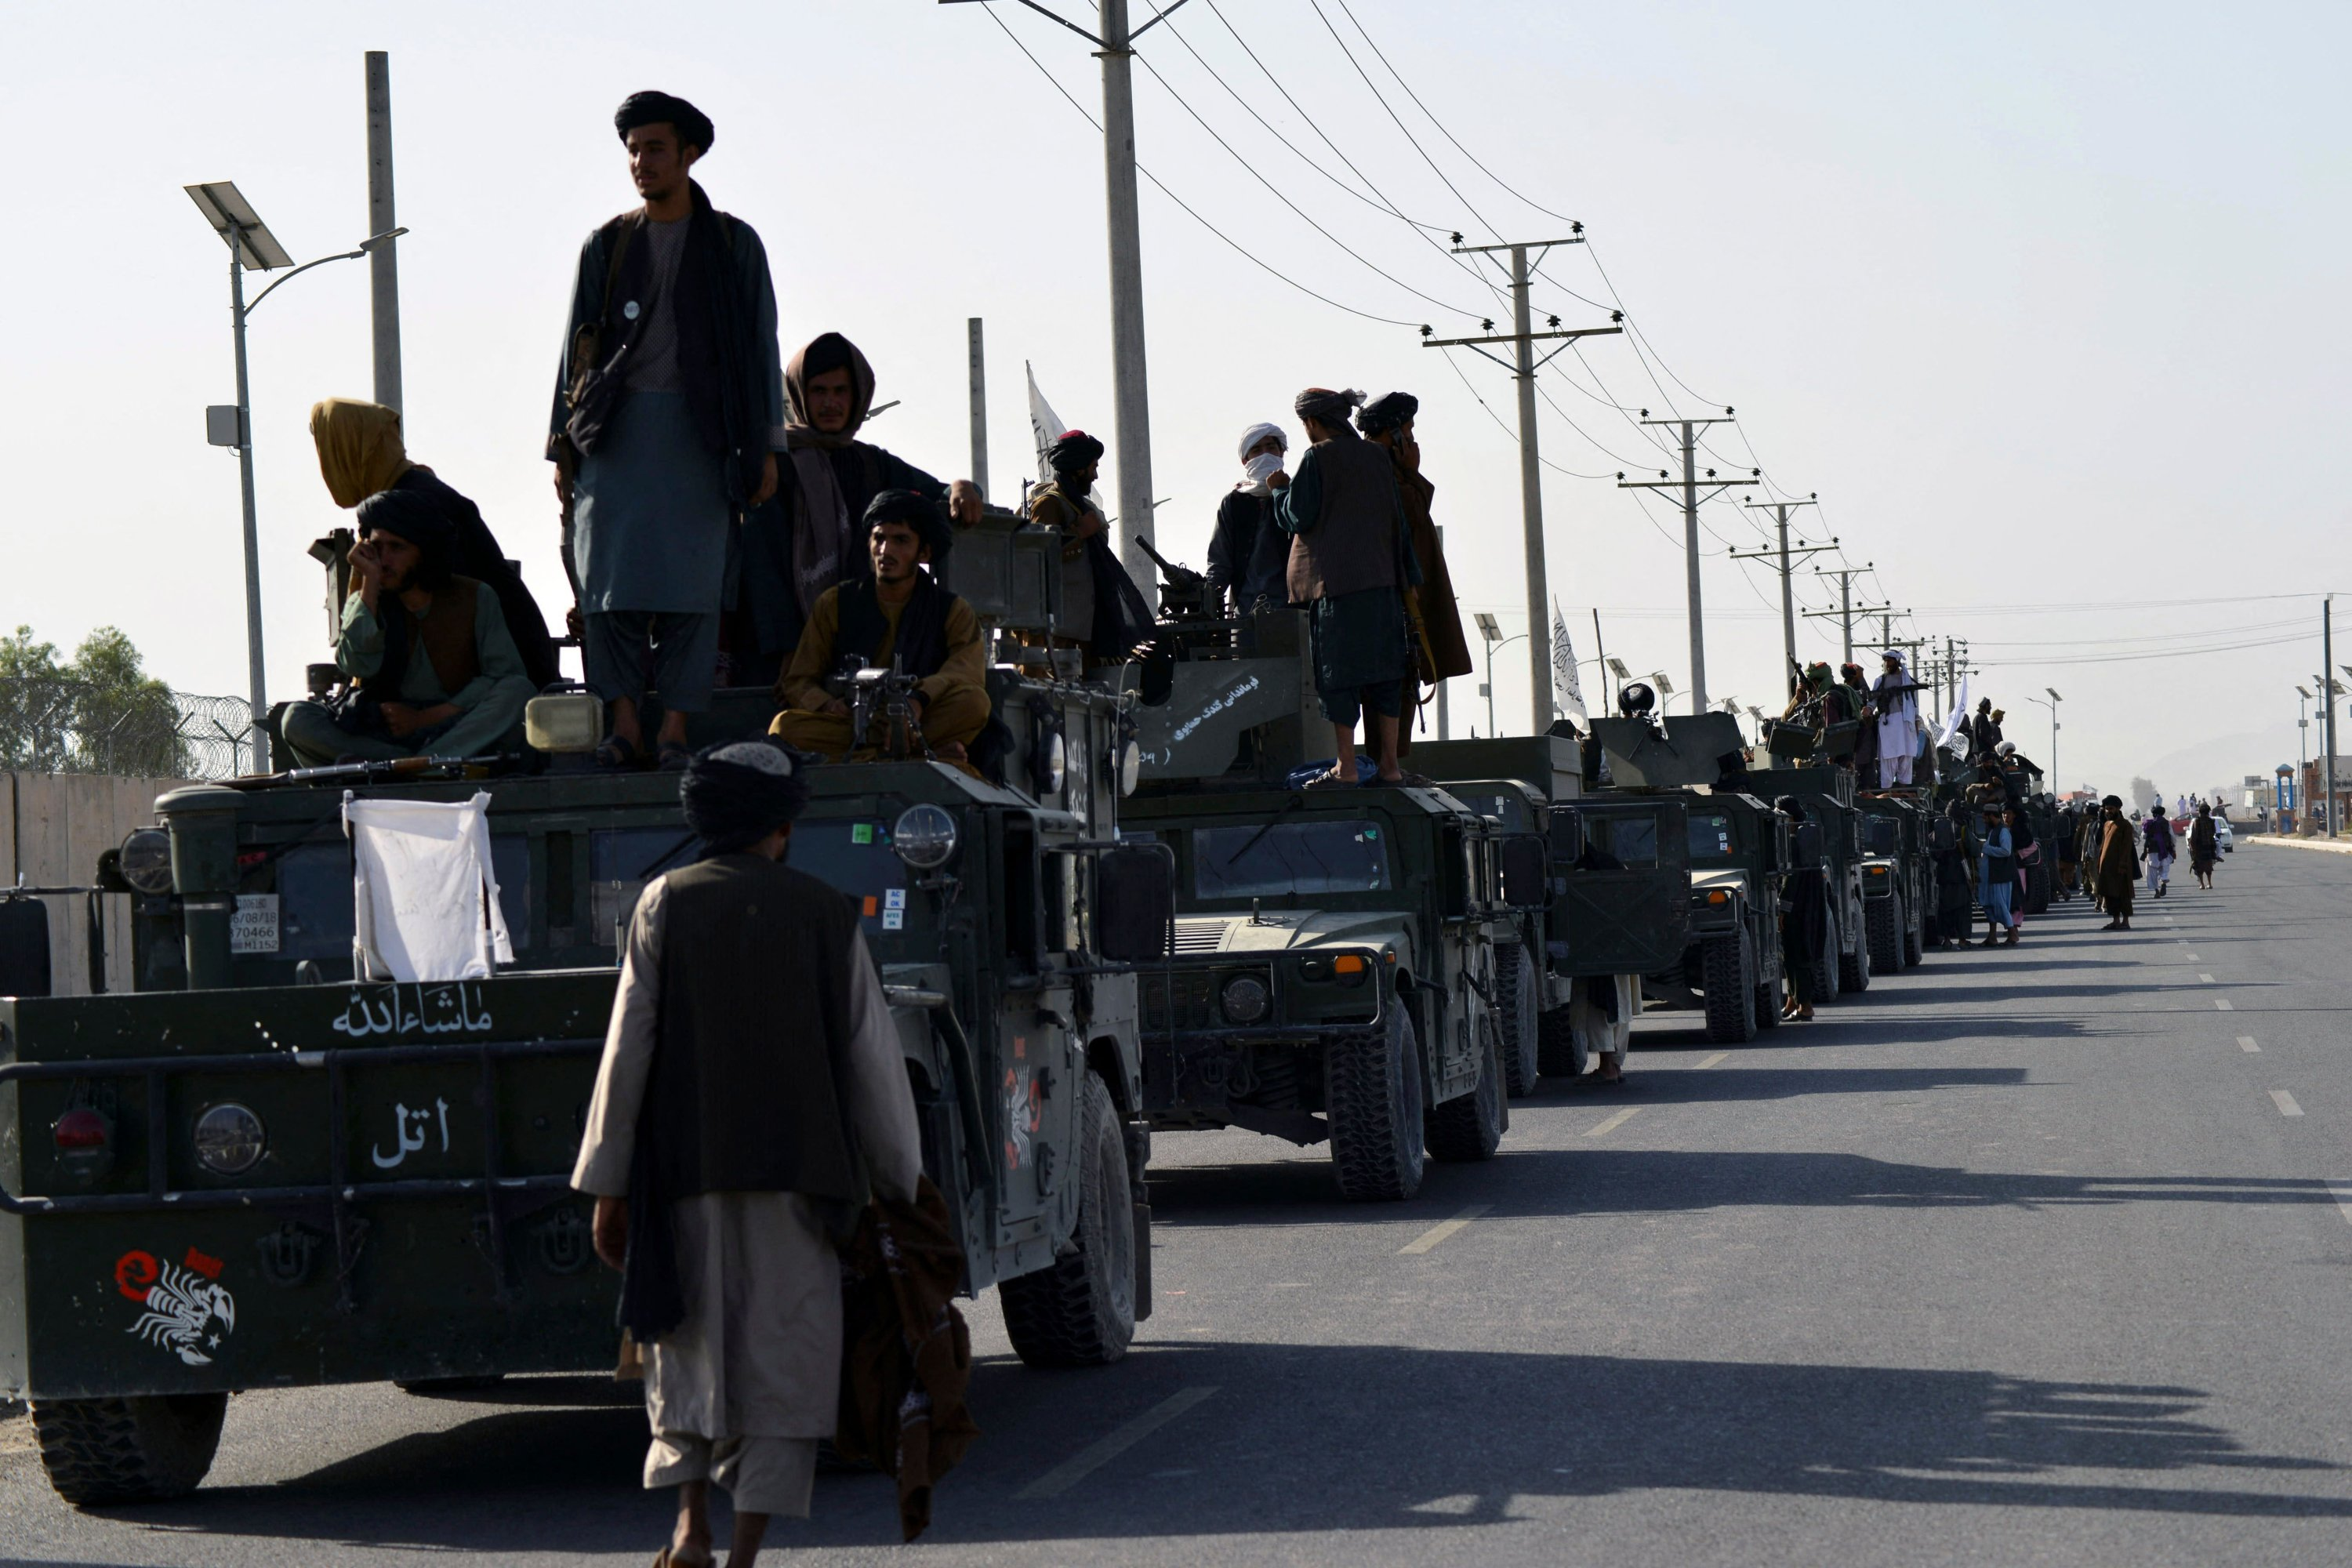 Taliban fighters atop Humvee vehicles prepare before parading along a road to celebrate after the U.S. pulled all its troops out of Afghanistan, in Kandahar, Afghanistan, Sept. 1, 2021. (Photo by Javed Tanveer via AFP)